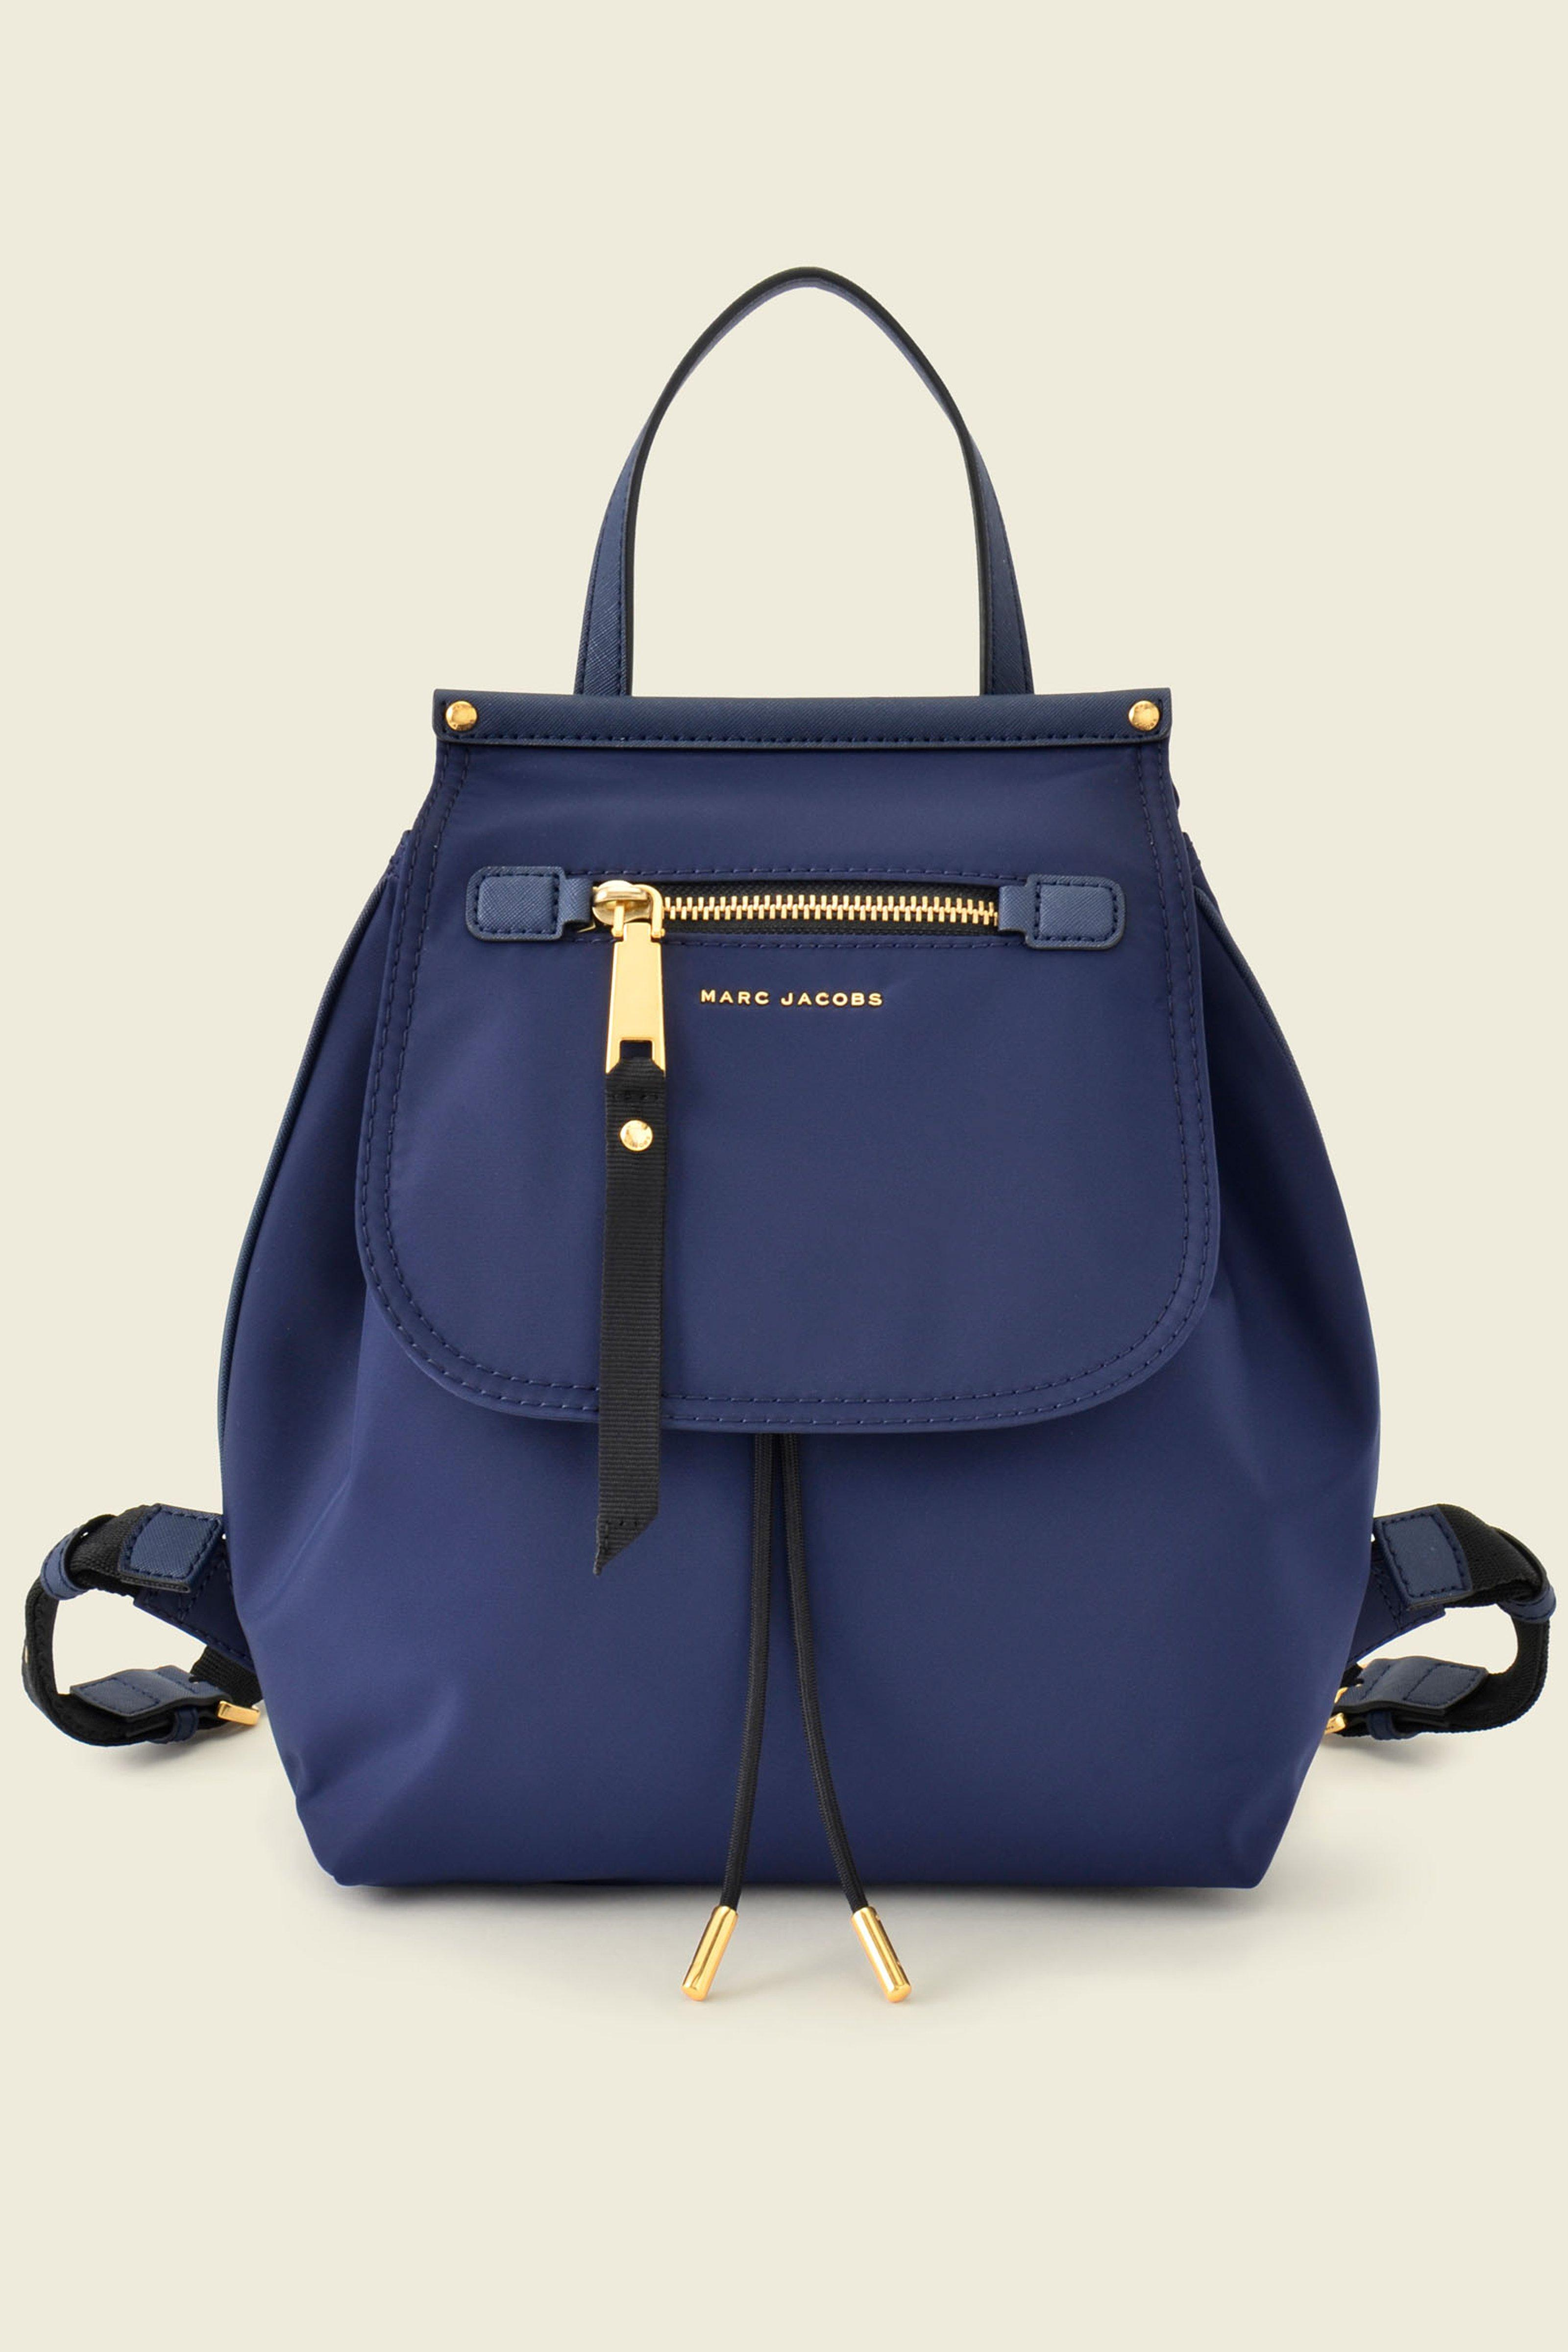 Marc Jacobs Trooper Backpack In Midnight Blue